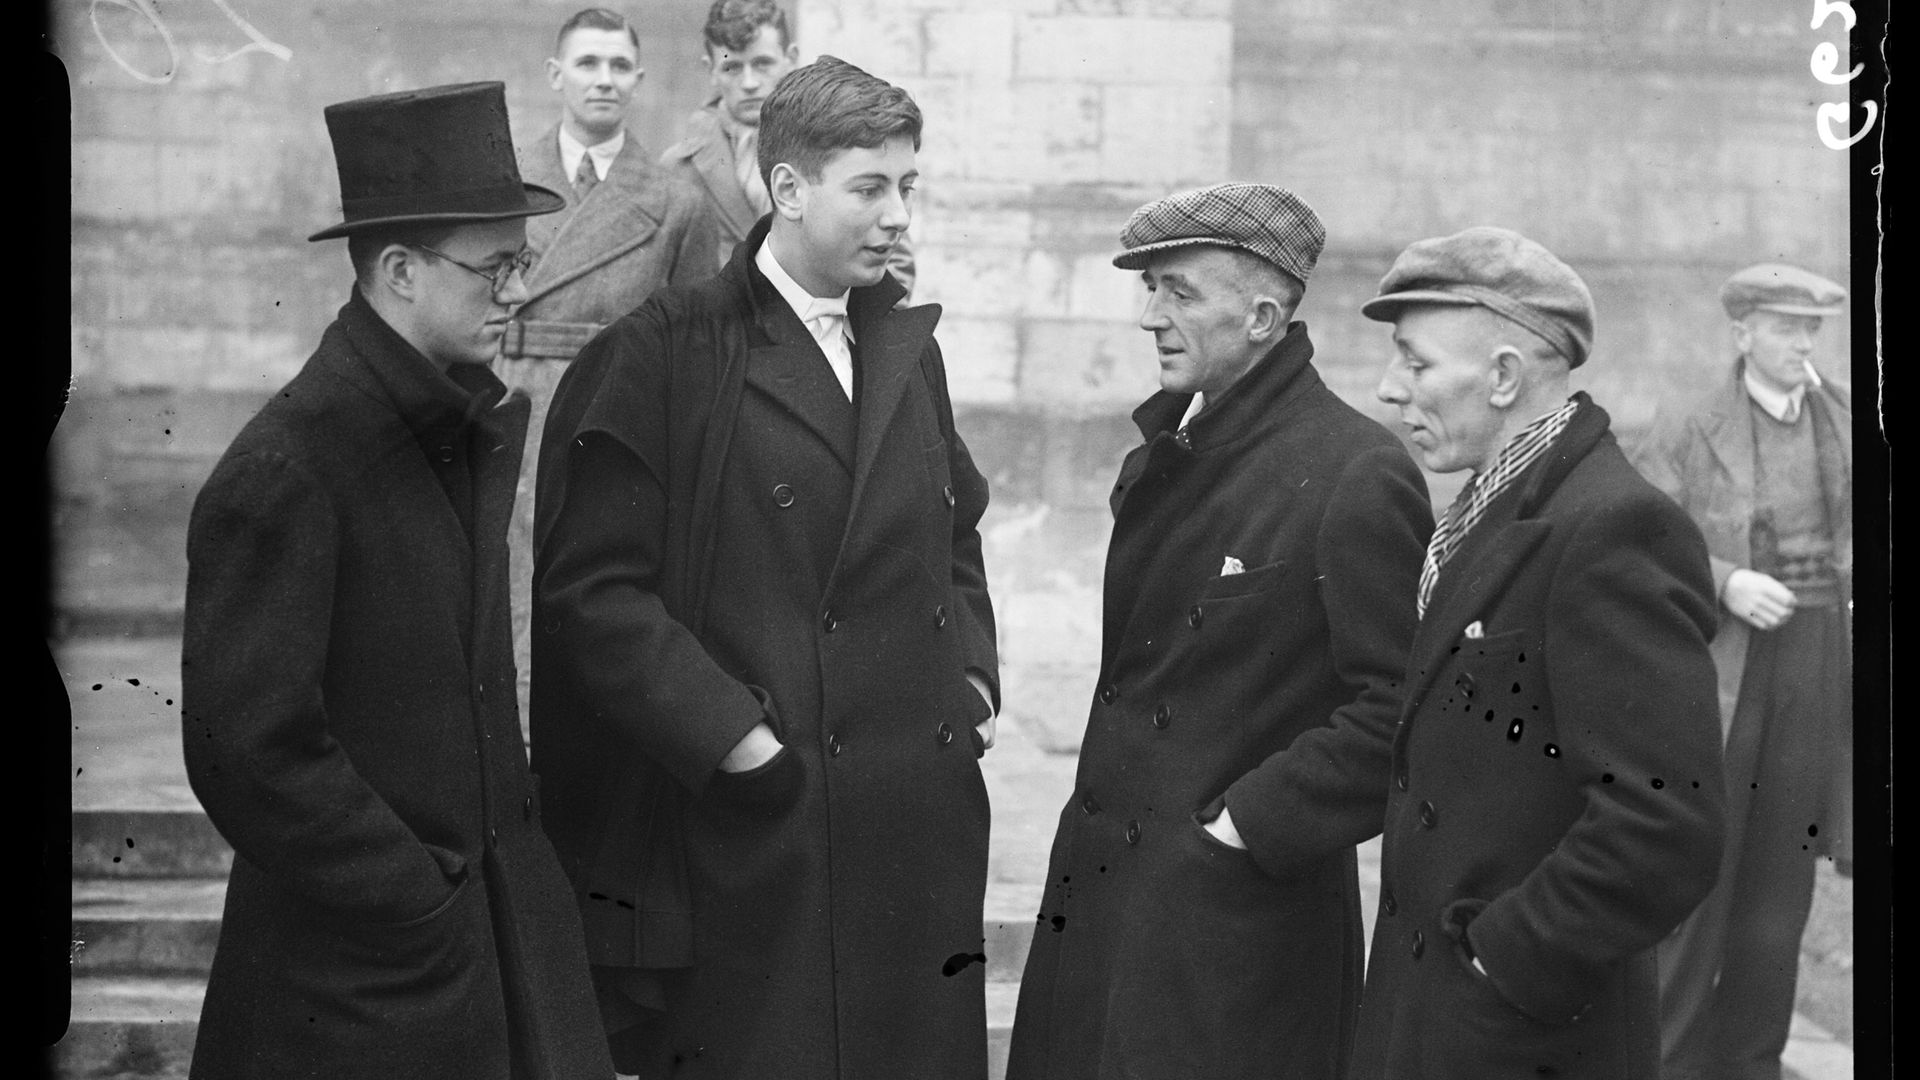 Durham miners meet Eton pupils in 1938, ahead of the second game between the two sides - Credit: SSPL via Getty Images